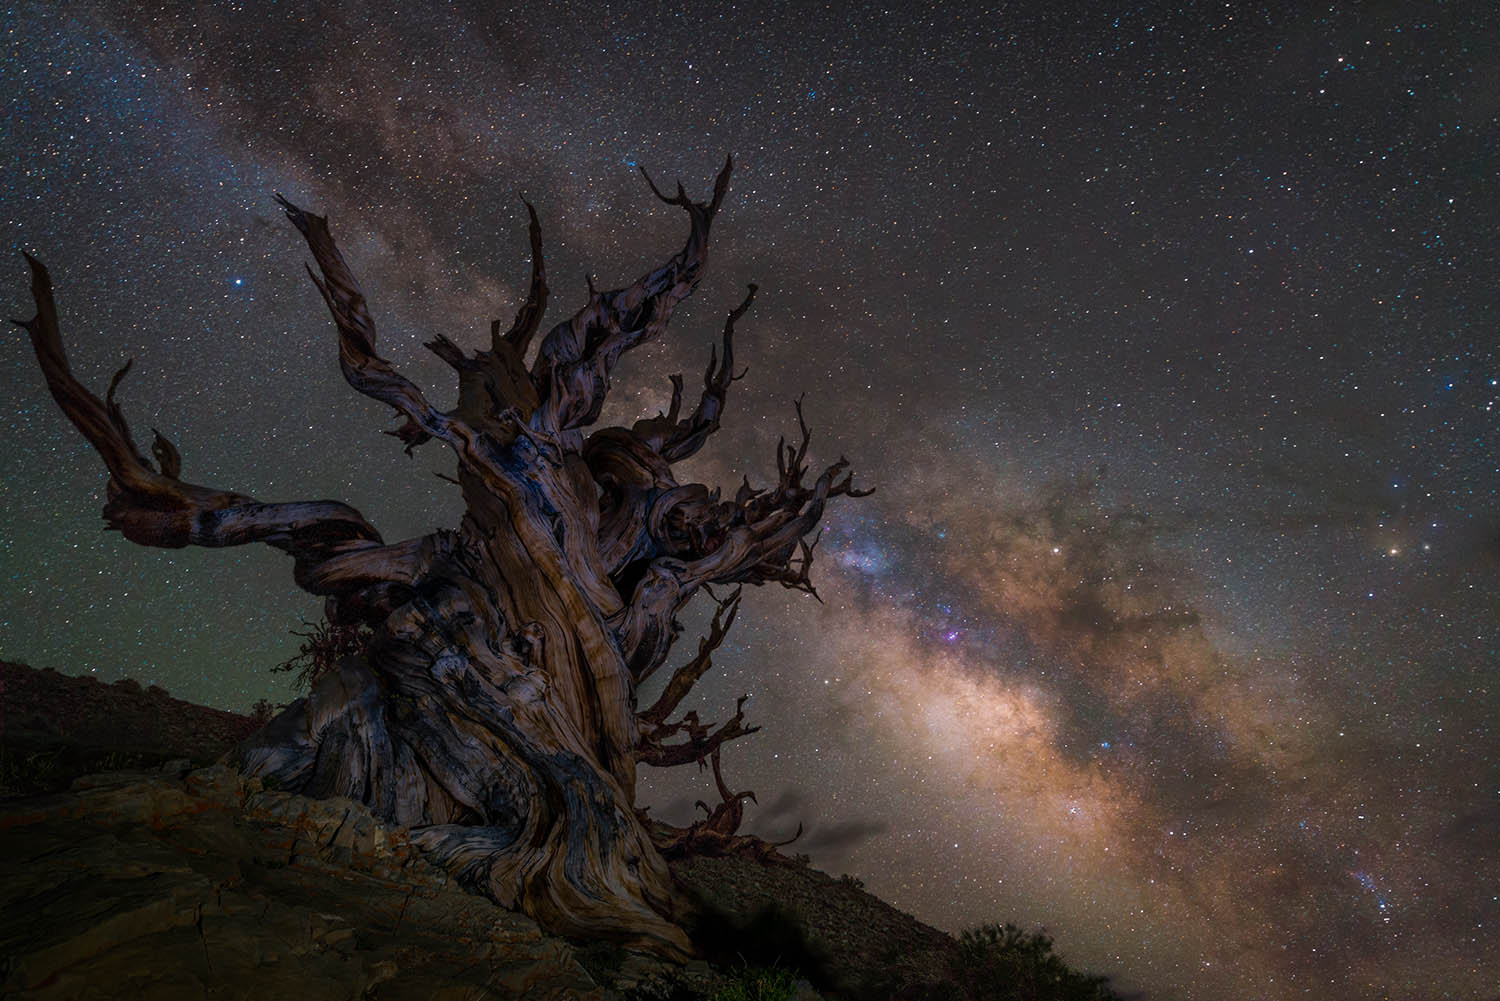 Image of ancient tree with the Milky Way in the background